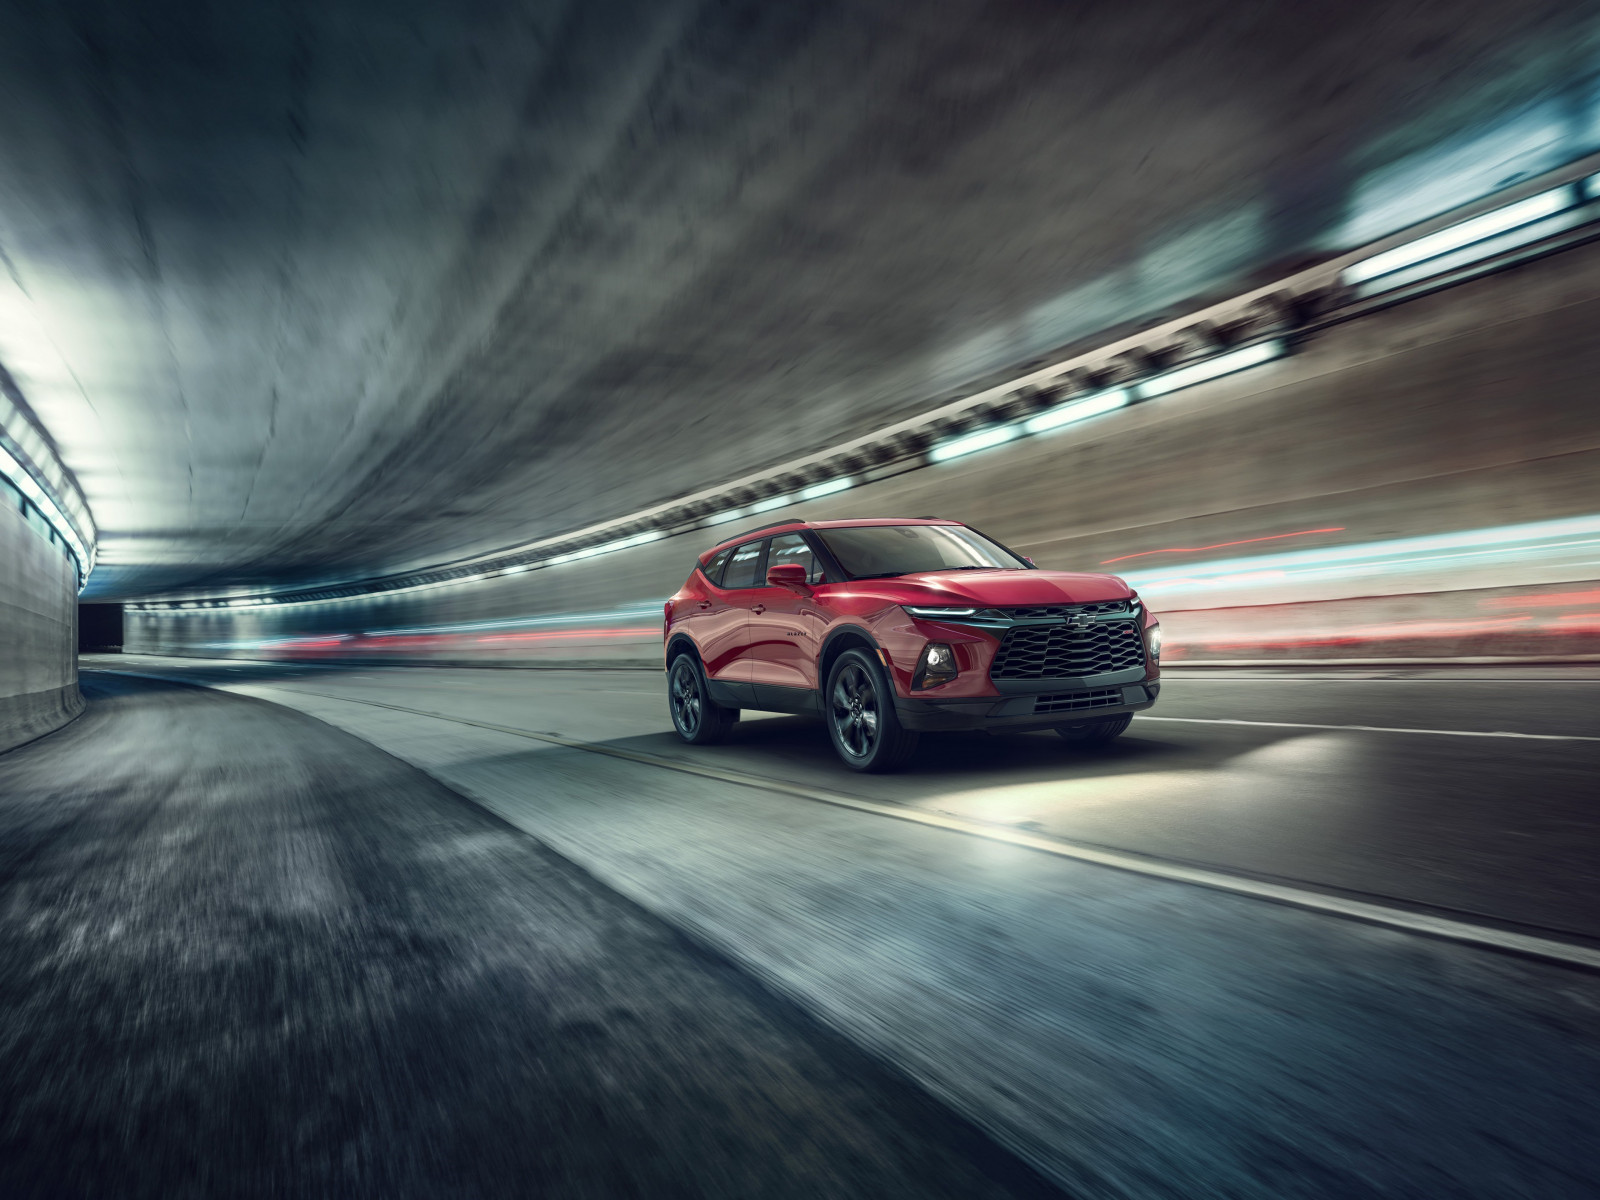 Chevrolet Blazer wallpaper 1600x1200